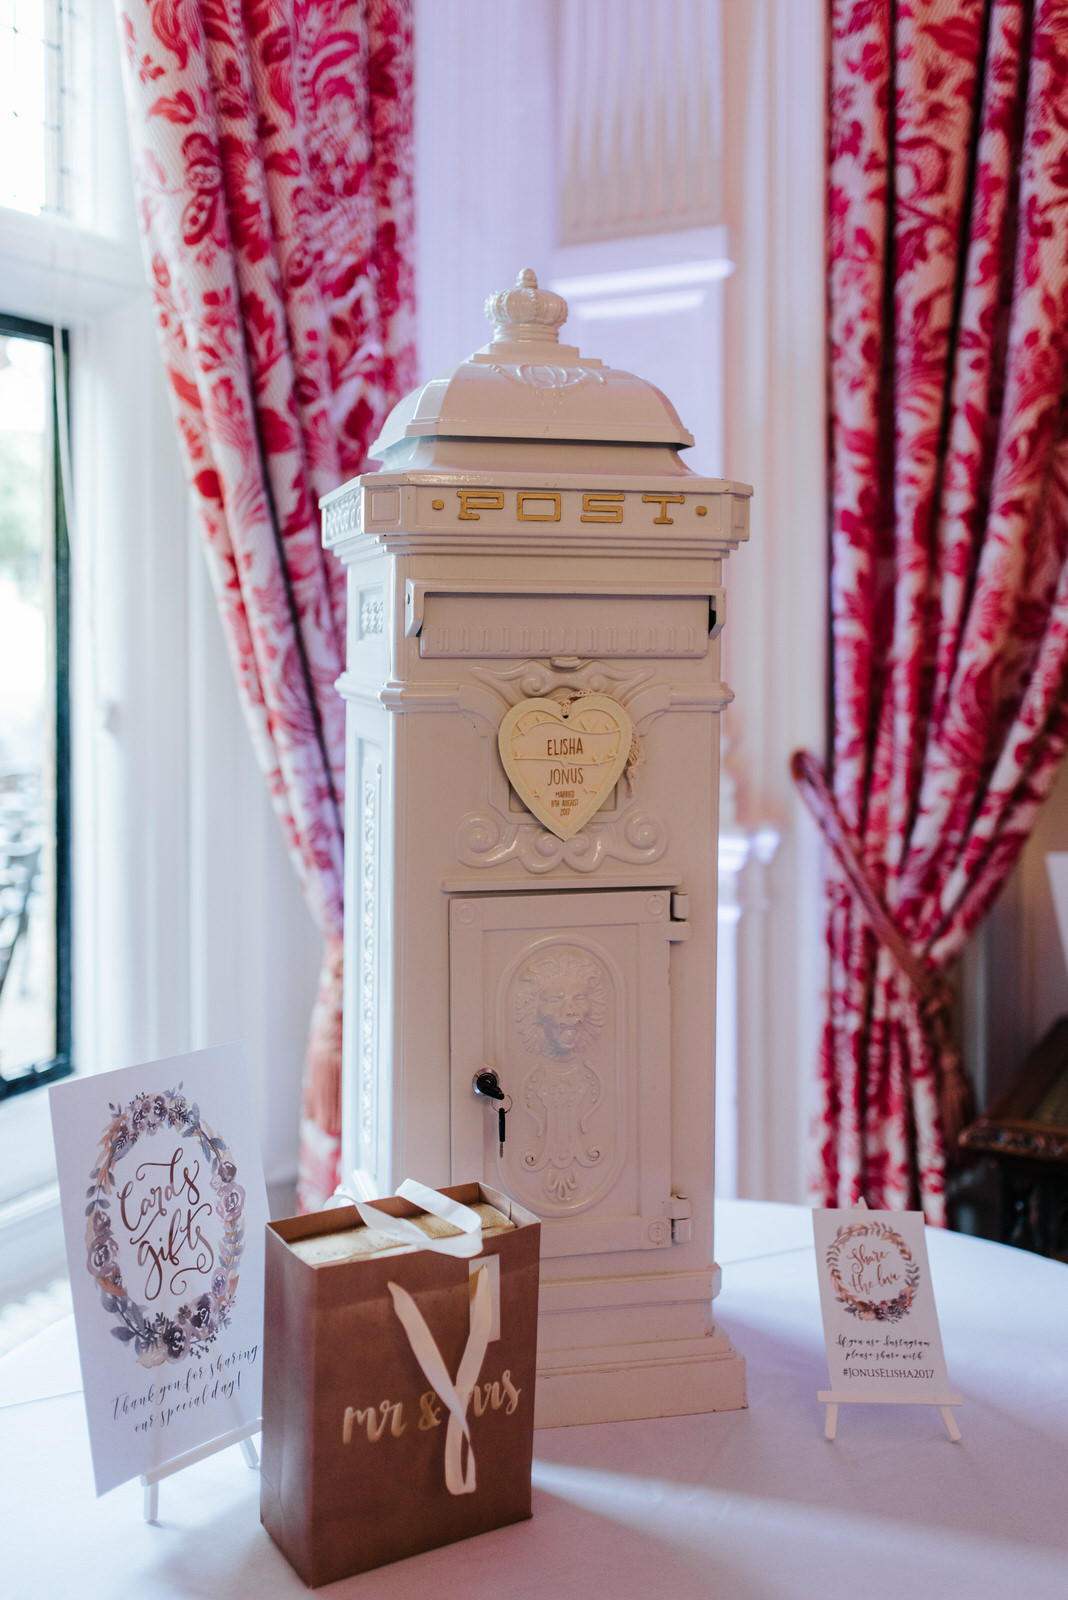 Postbox bride and groom designed themselves so that guests could